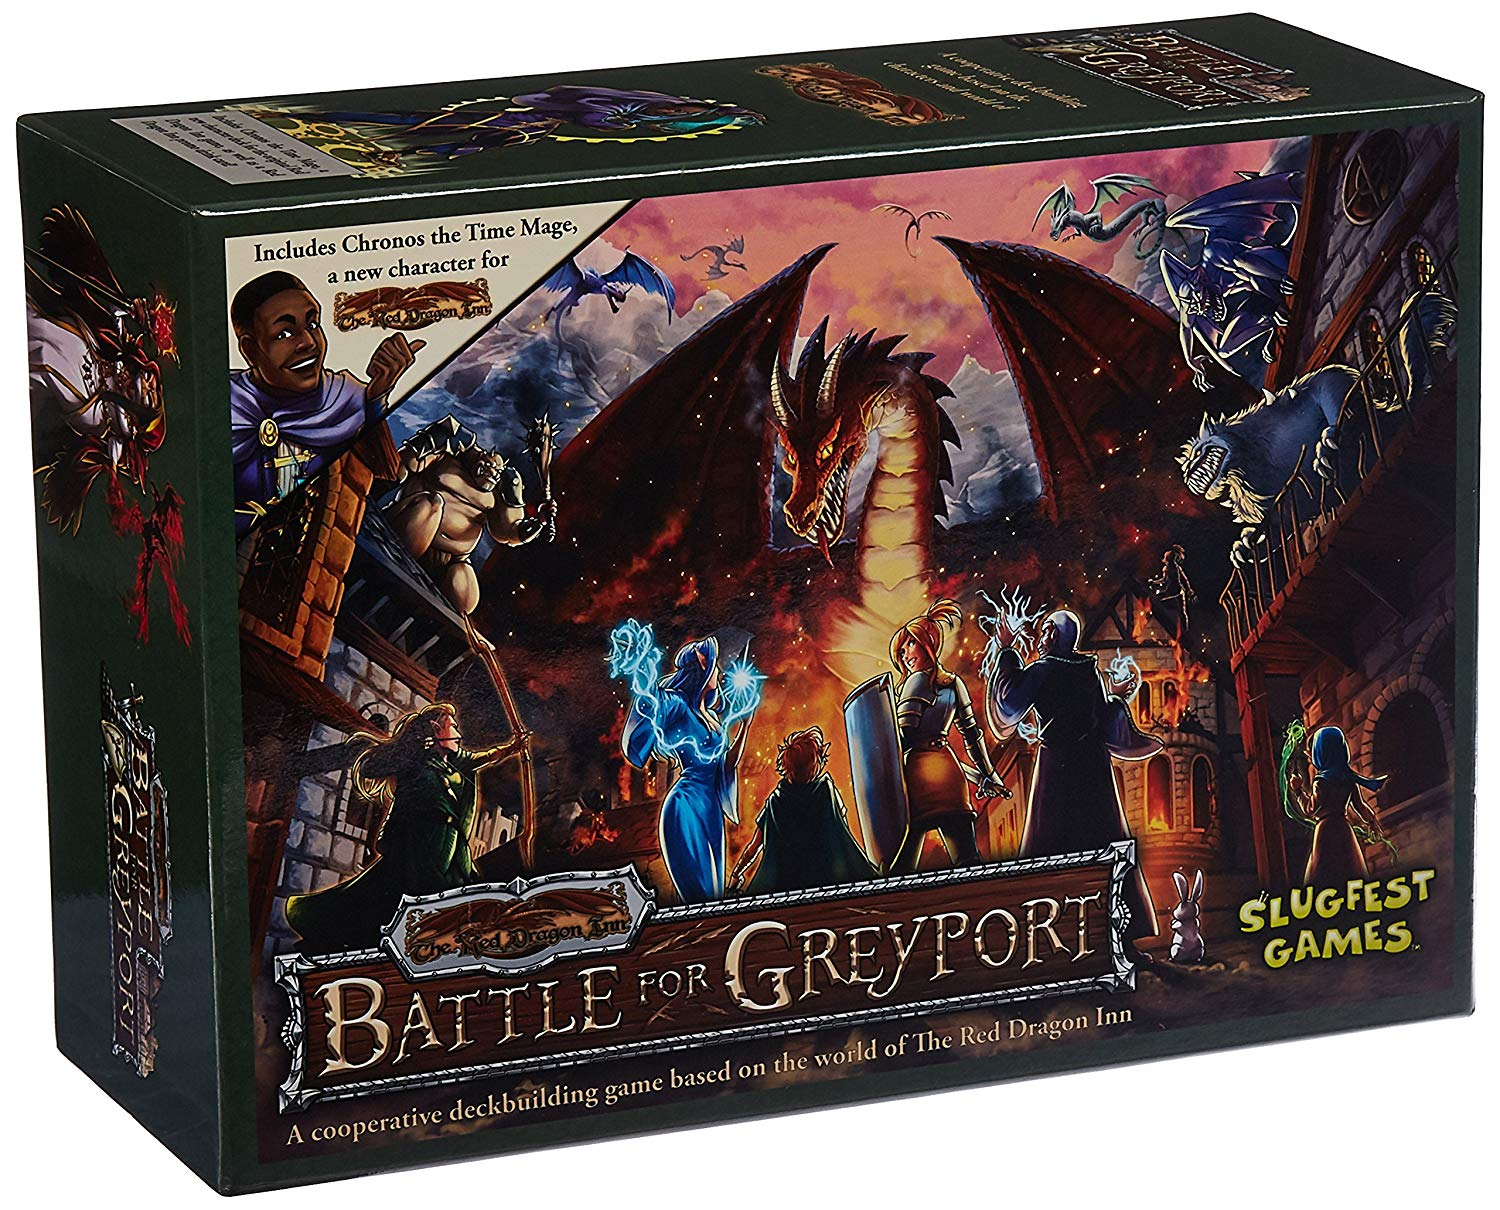 'Slug Party Games SFG00023 – Card Game Red Dragon Inn: Battle for Grey Port